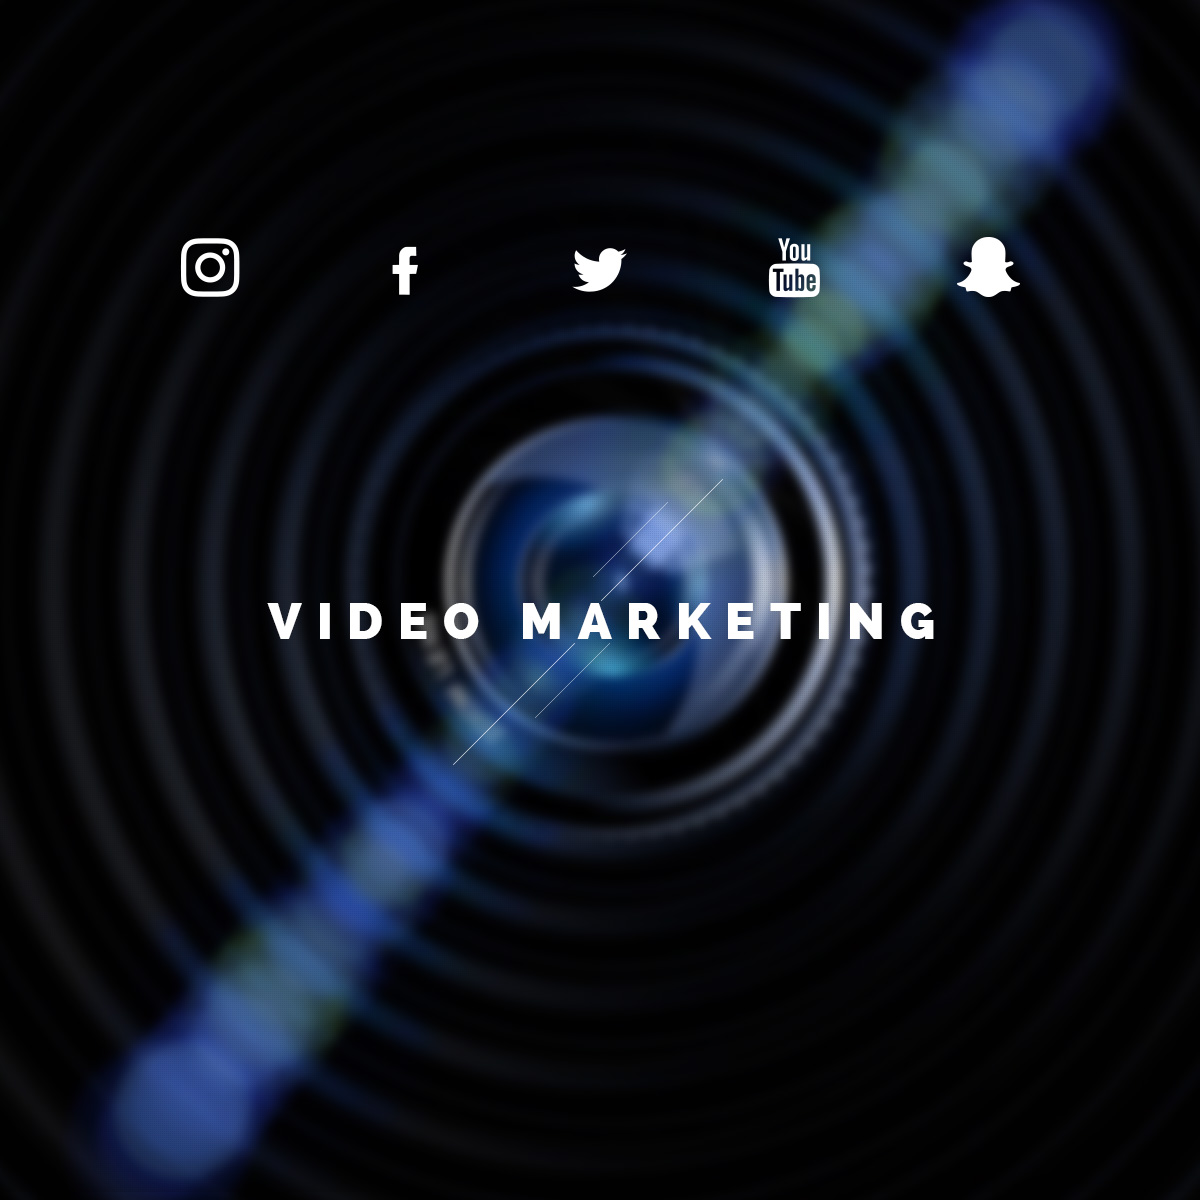 Video Marketing for Social Media Channels